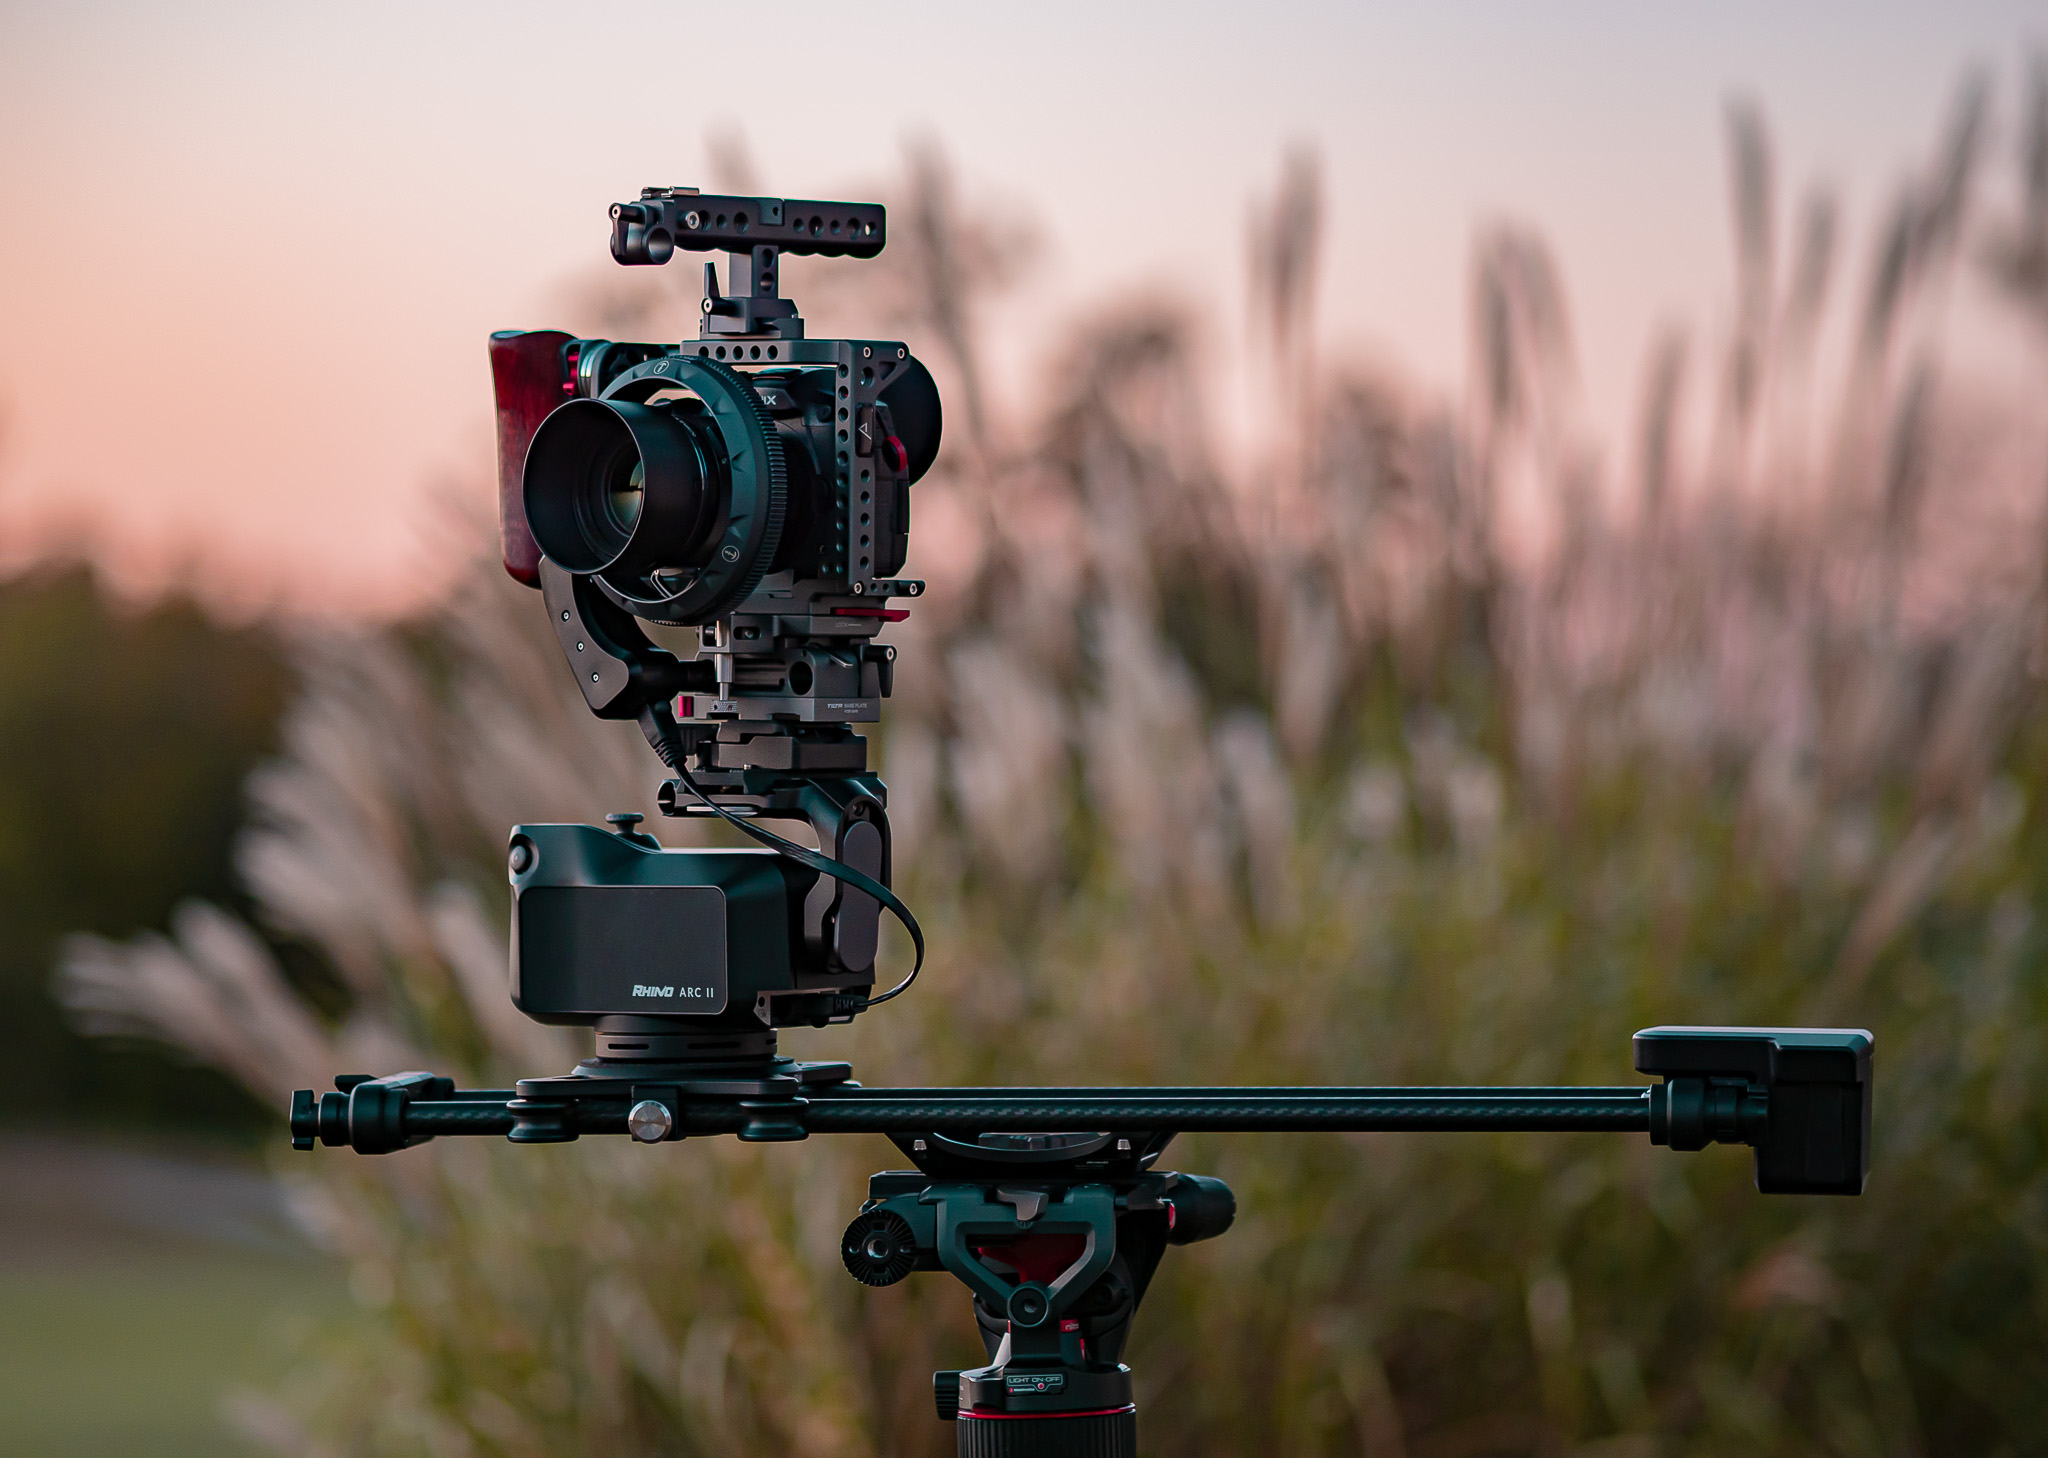 Pinnacle Timelapse and Hyperlapse GH5S in Tilta Cage on Rhino Arc 2 Carbon Fiber Camera Slider Nitrotech Manfrotto N8 Video Head